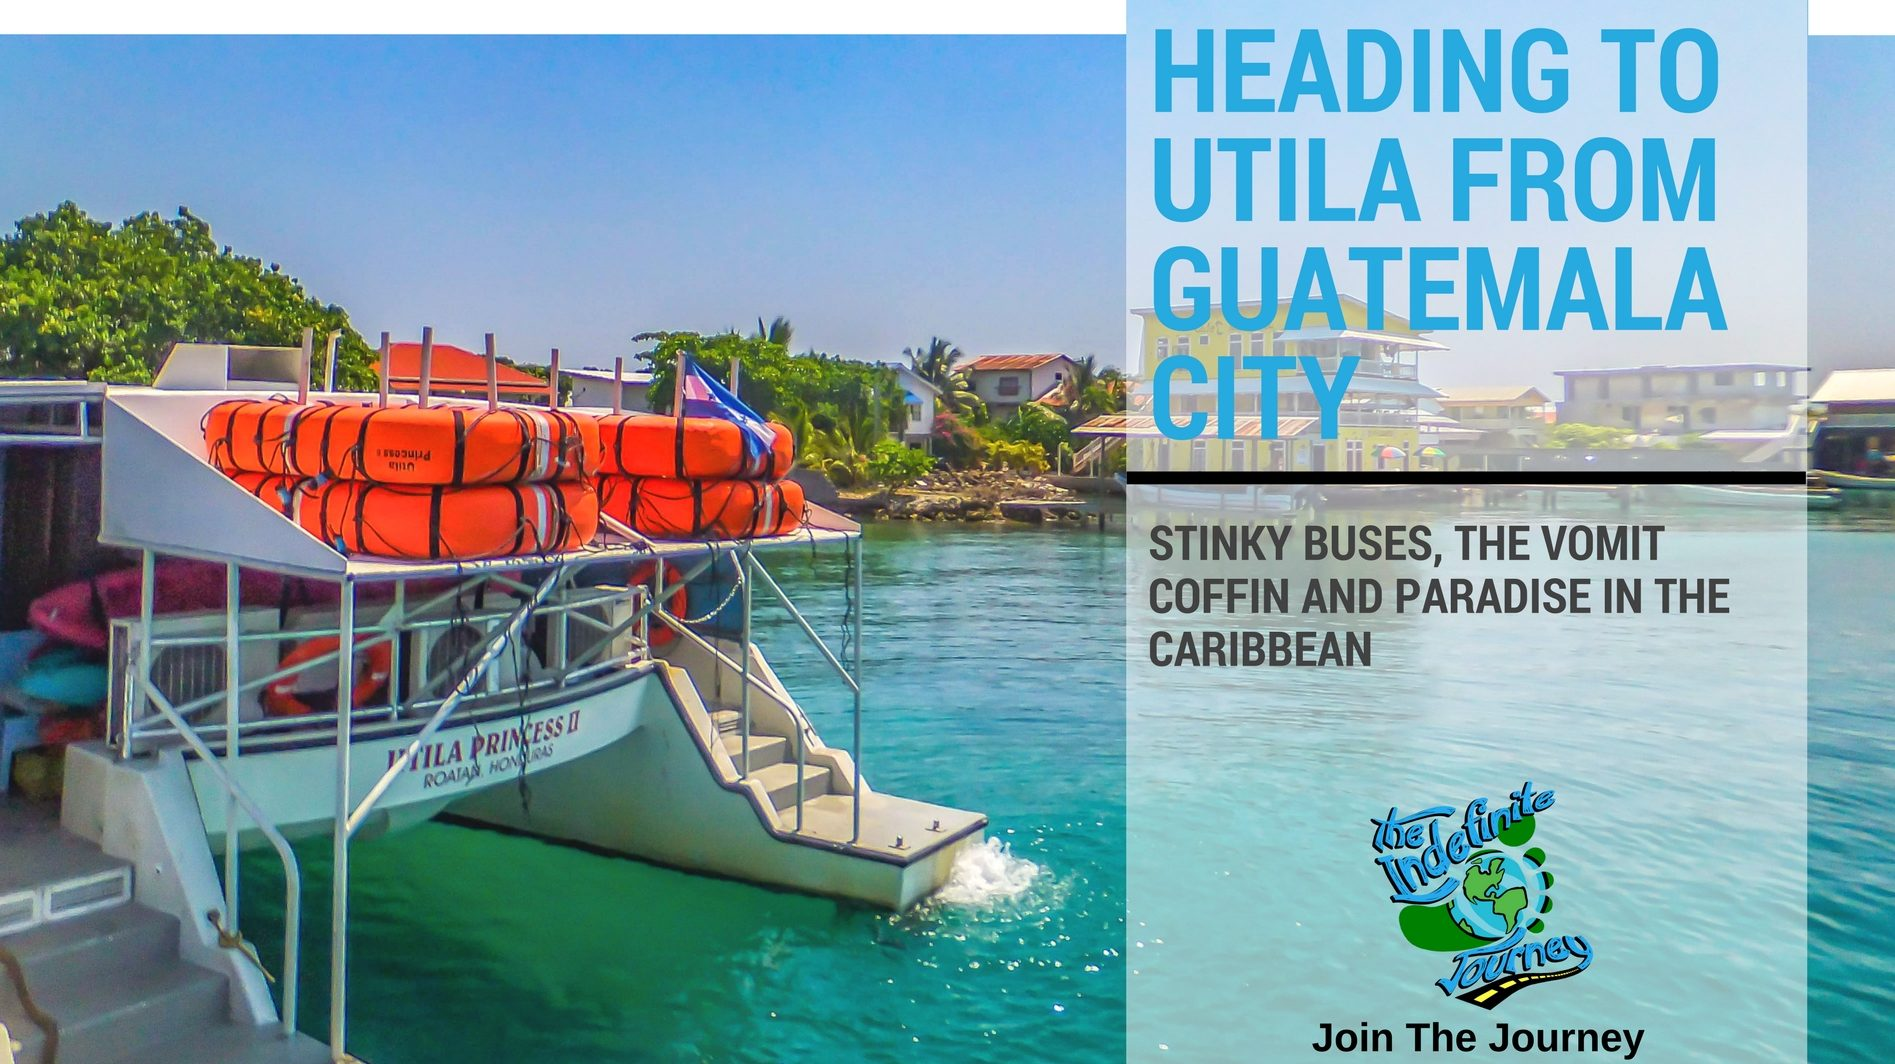 Heading to Utila from Guatemala City – Stinky Buses, The Vomit Coffin and Paradise